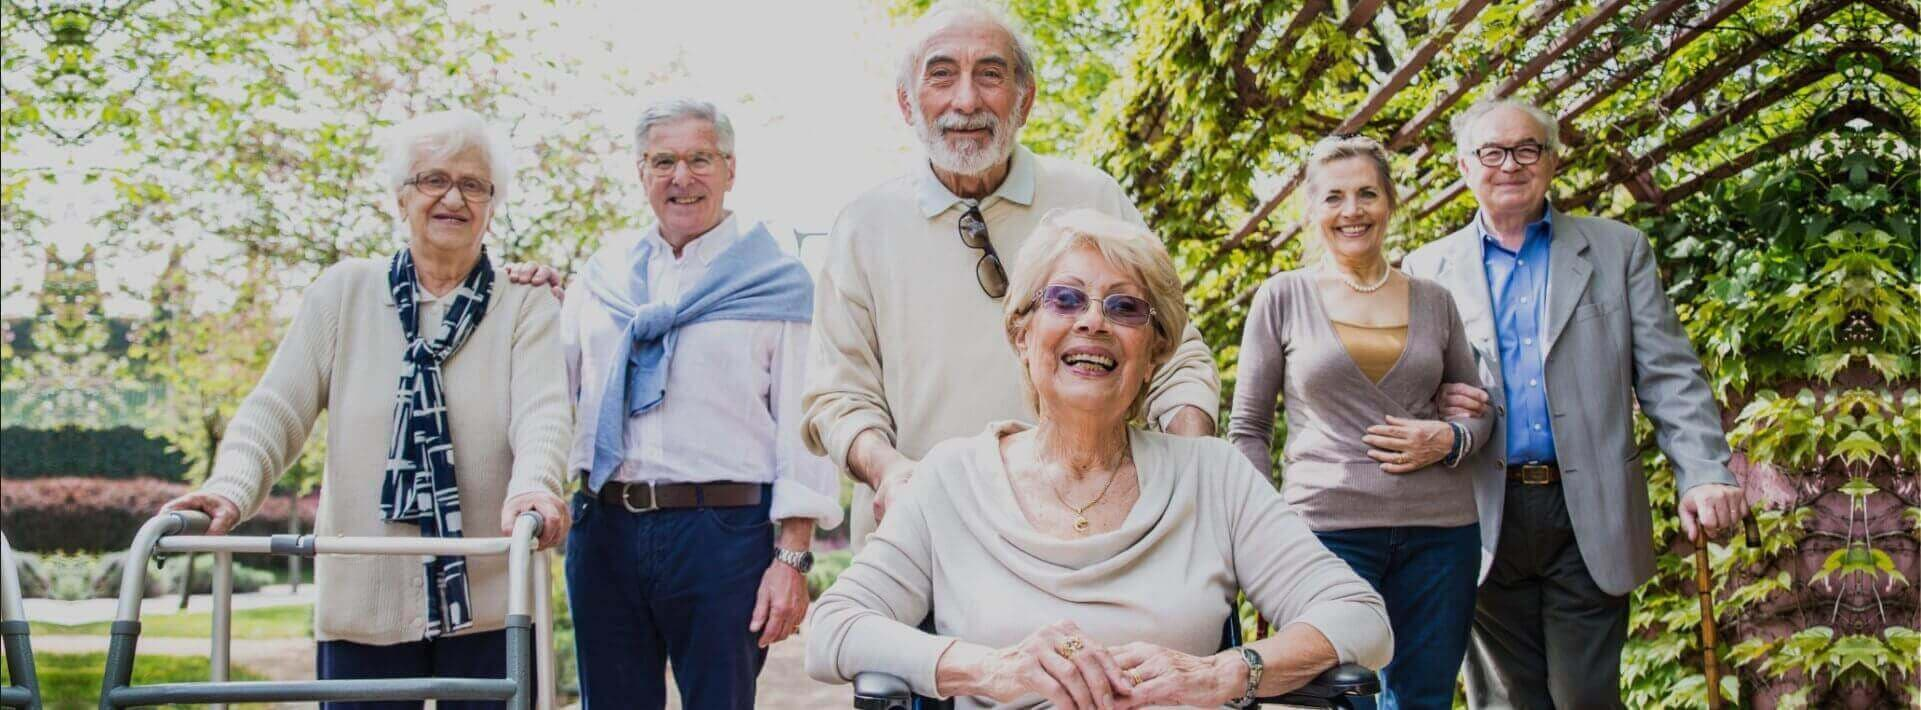 group of happy elderlies